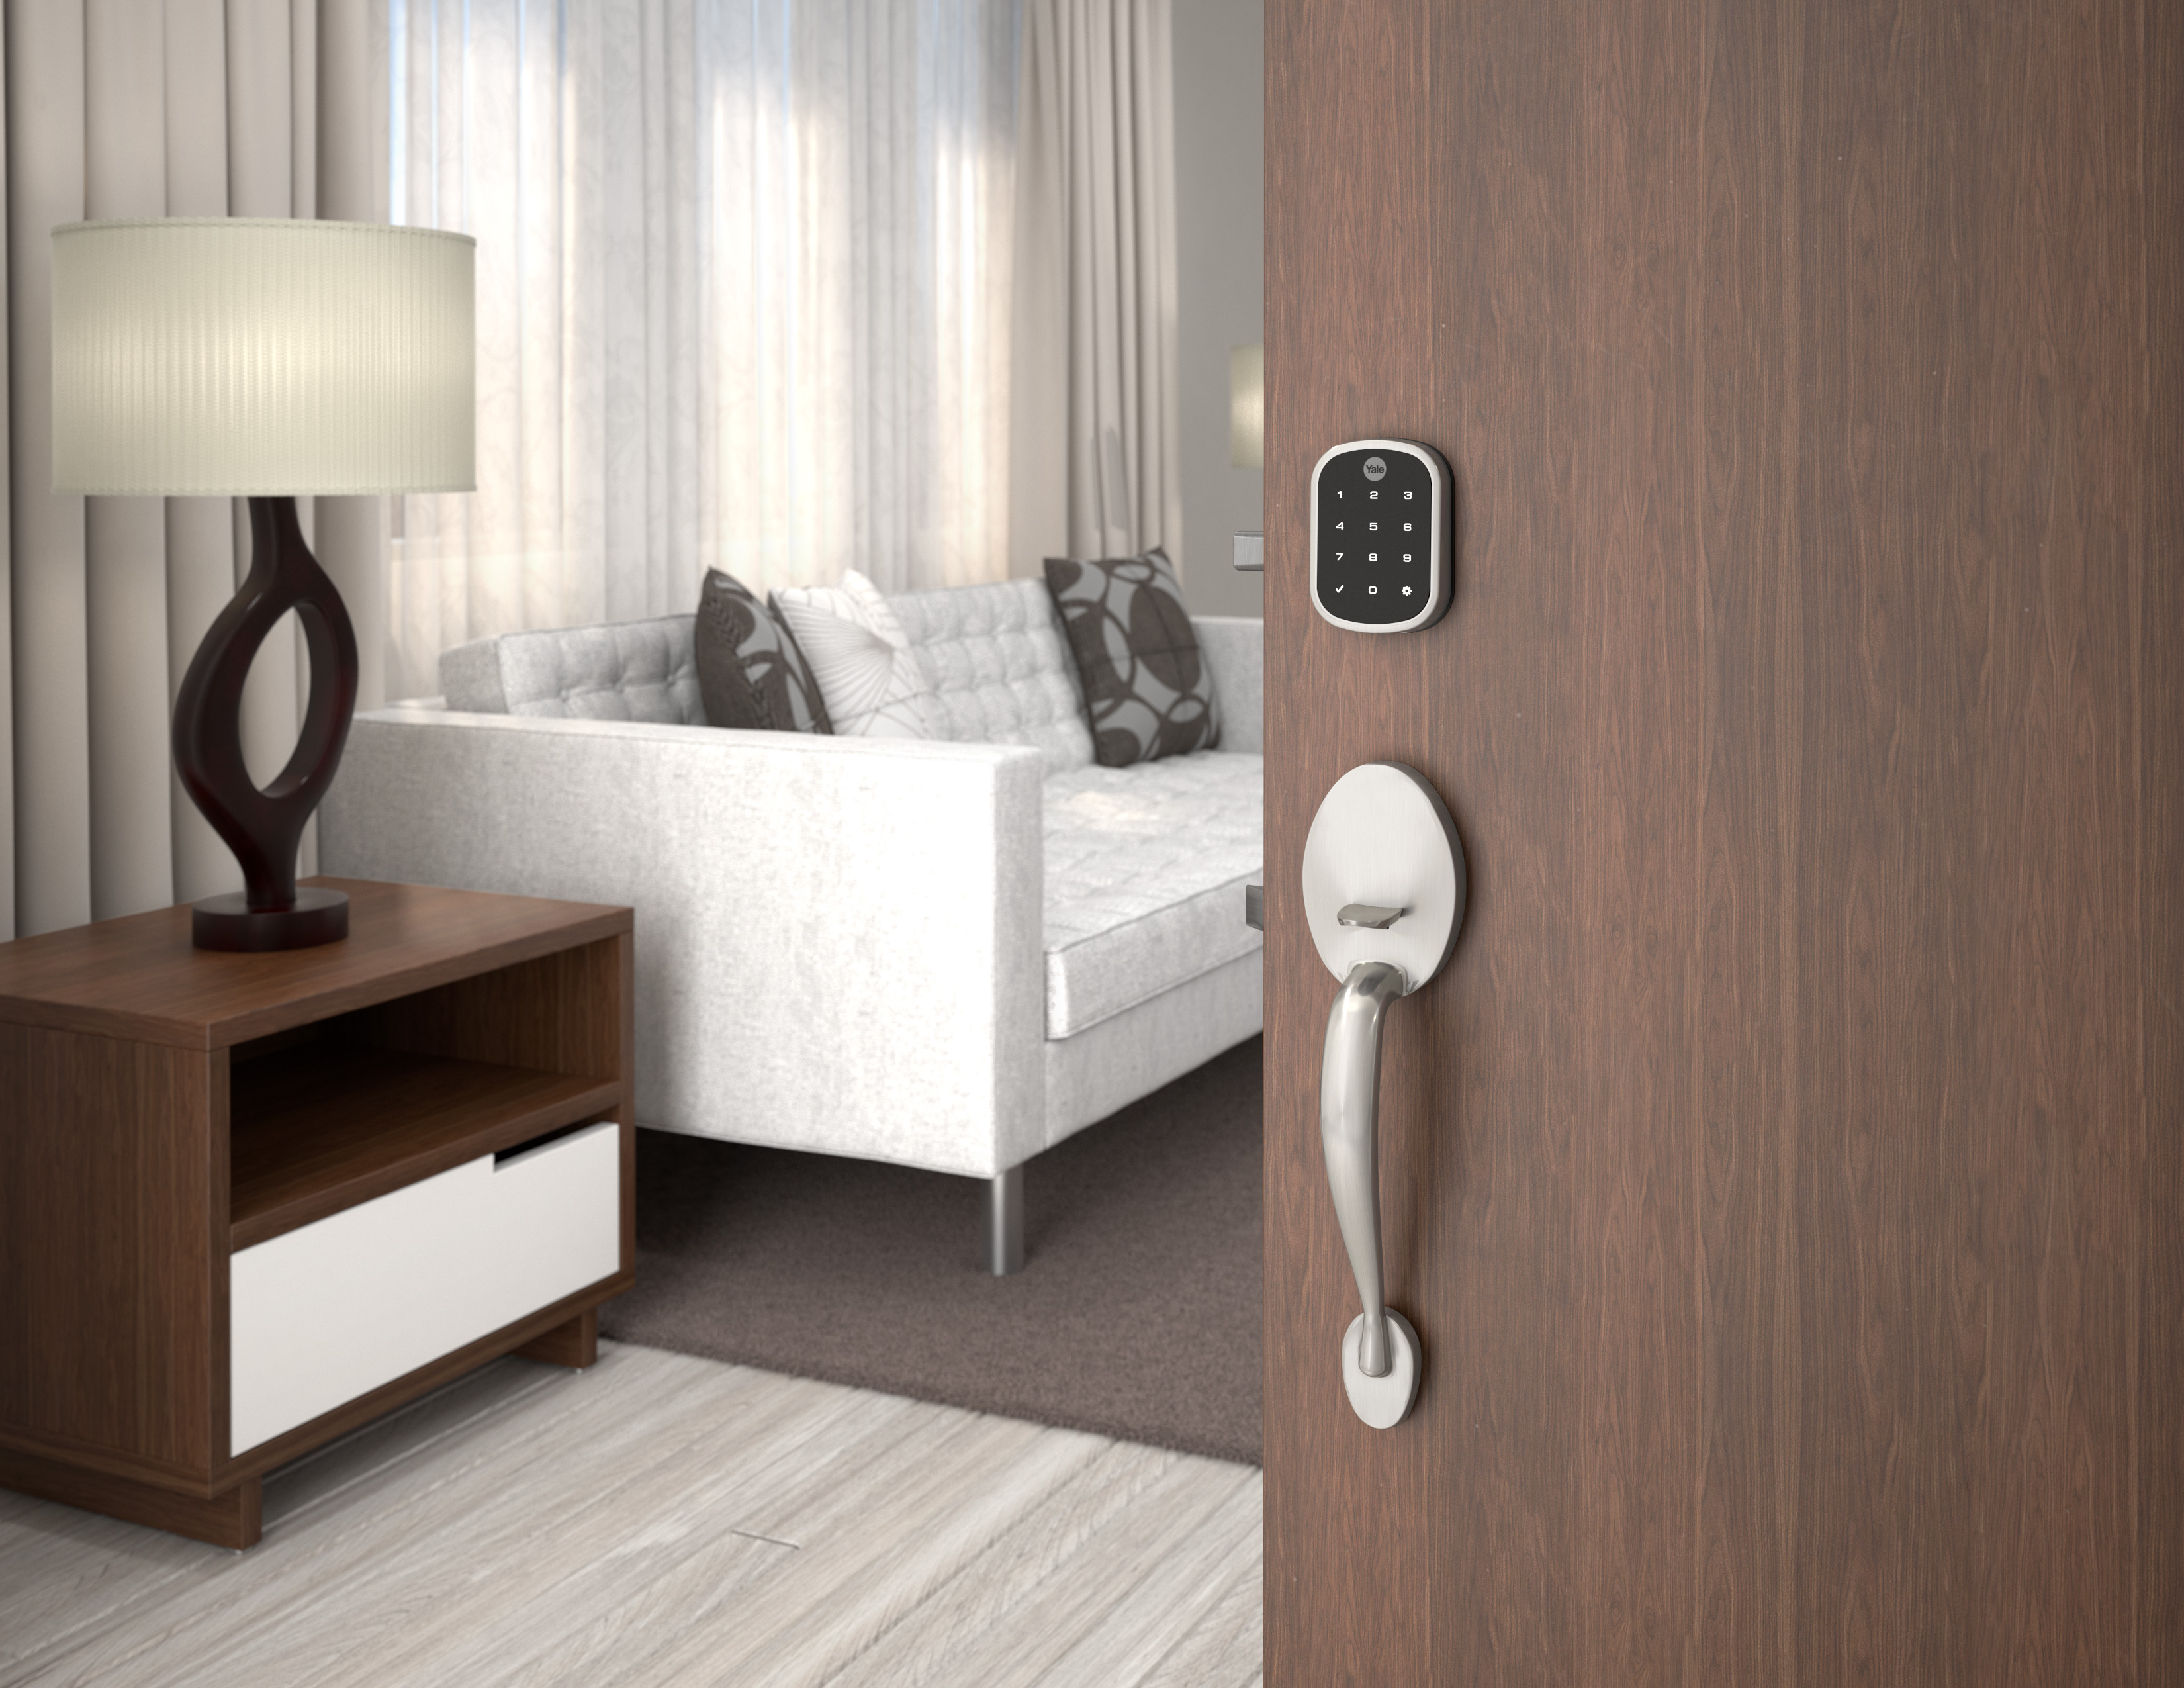 Smart locks: How to ensure guest safety at your vacation rental